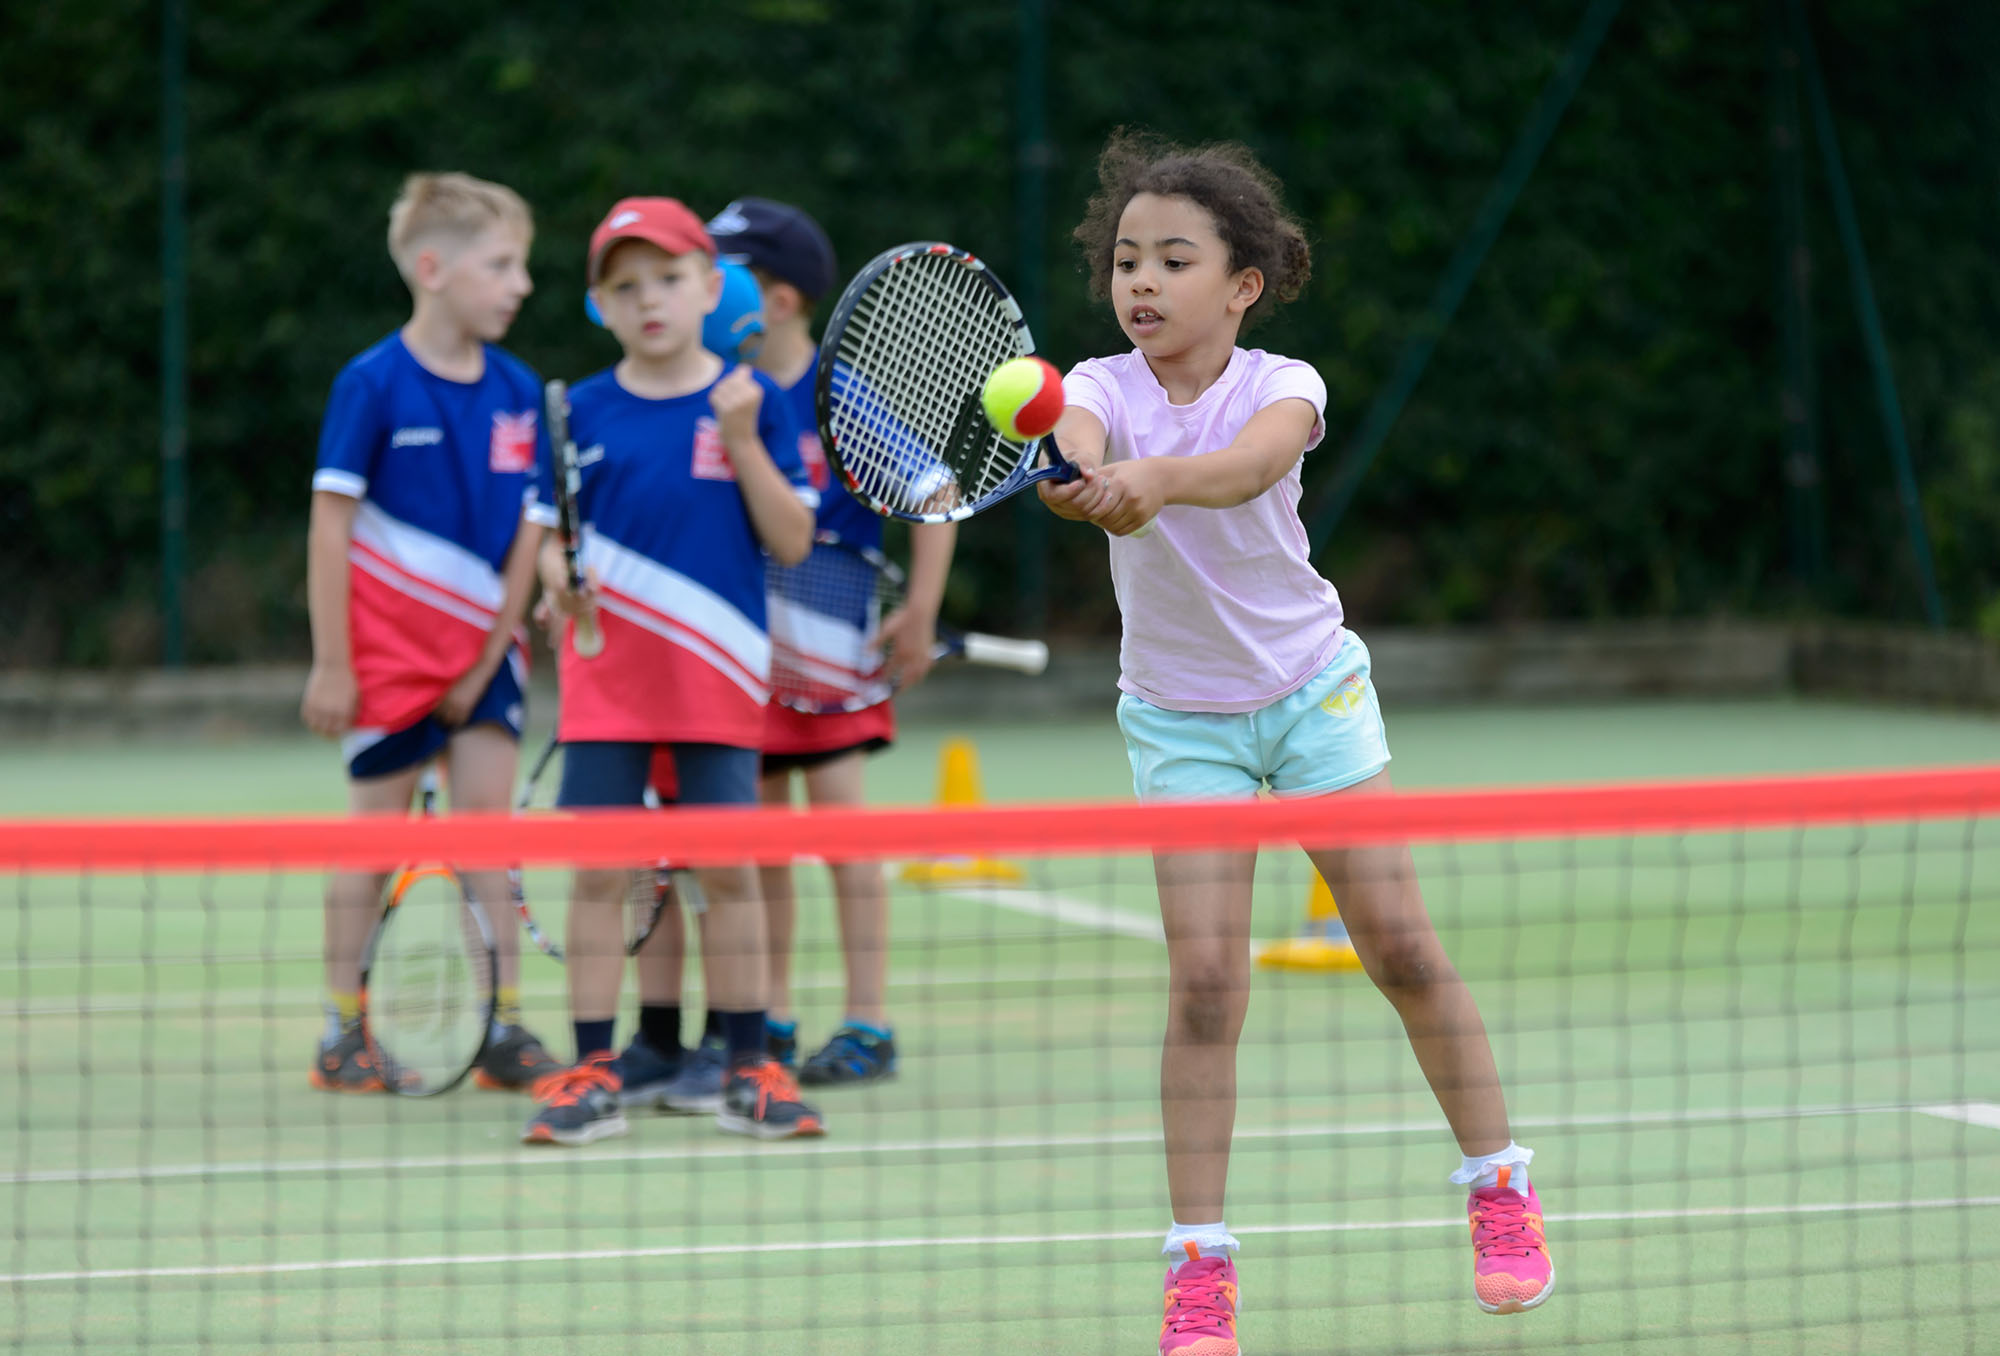 Young girl hits tennis ball at mini-tennis session